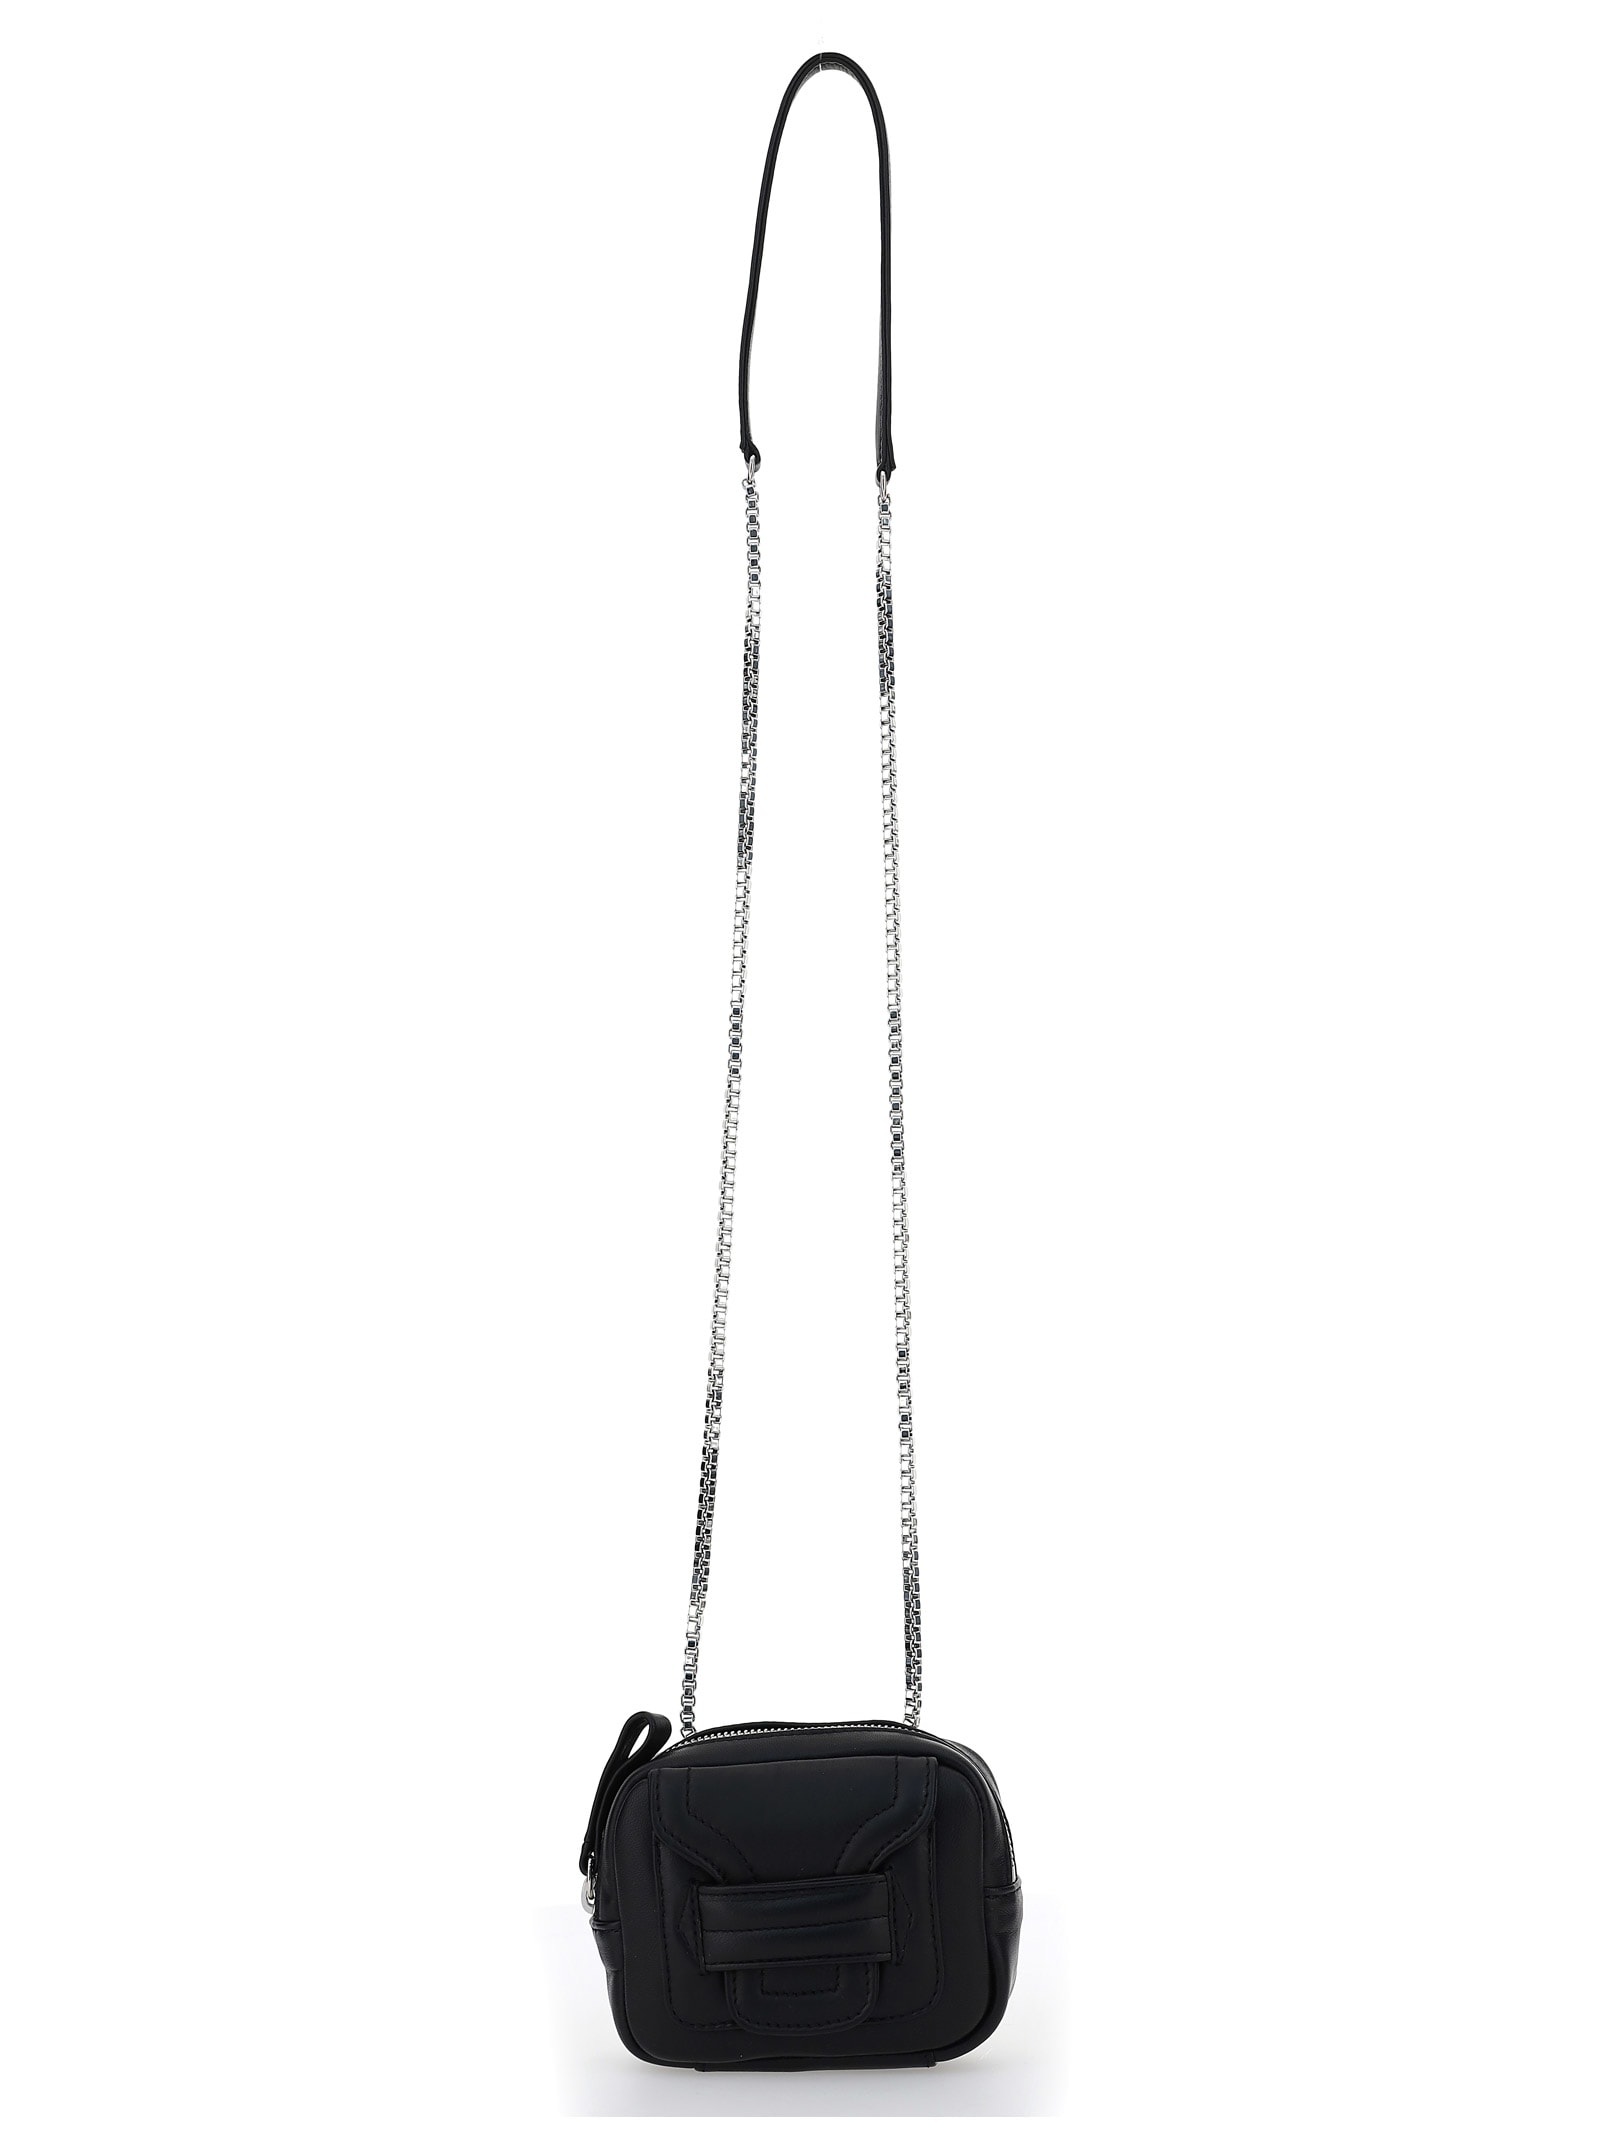 Pierre Hardy ALP PAD SHOULDER BAG